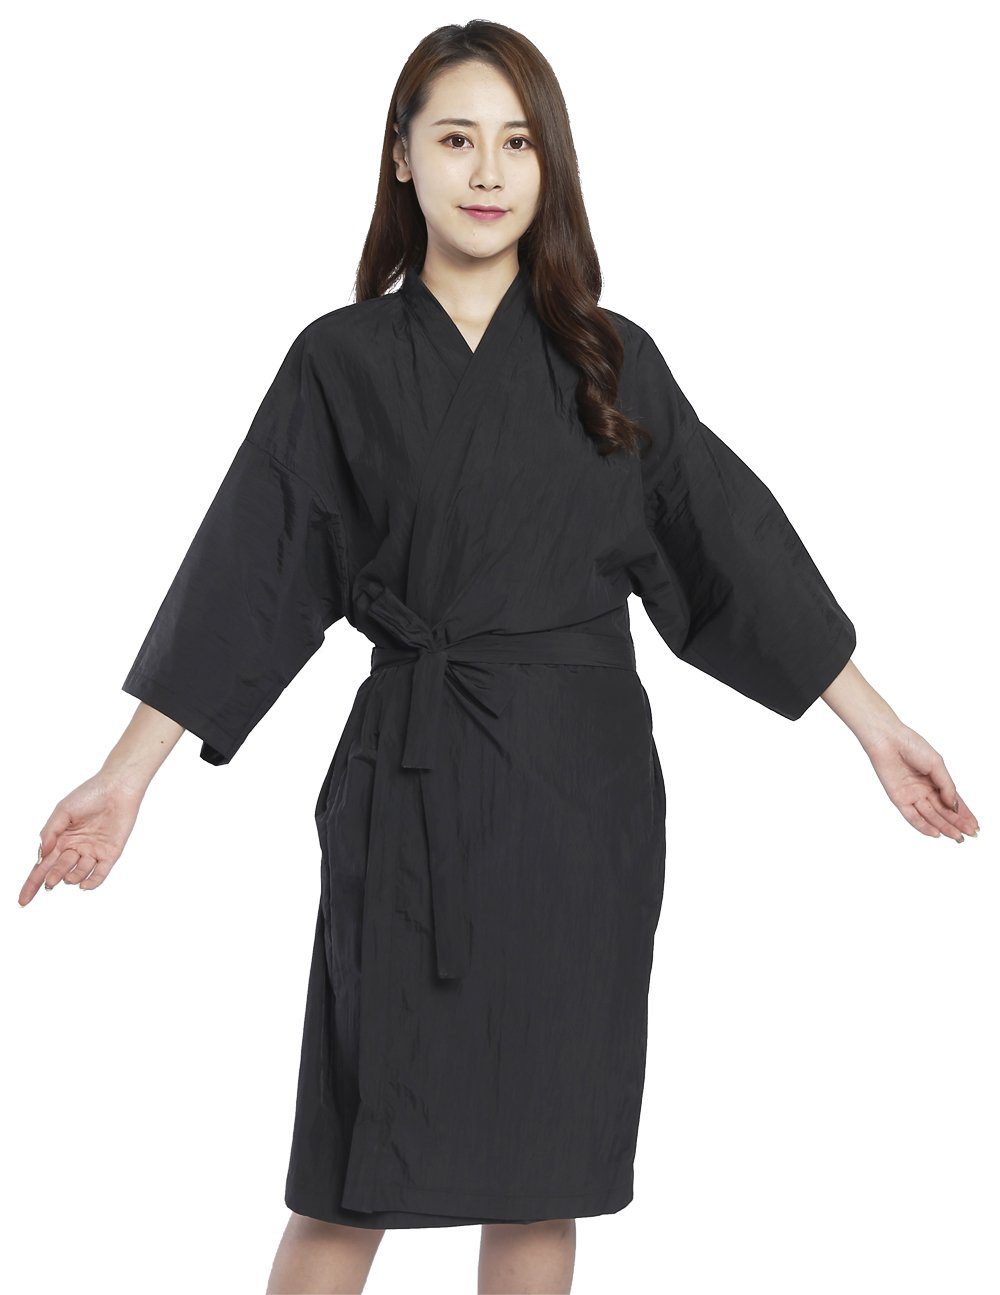 Salon Client Gowns Kimono Style, Hair salon Smocks Capes- 43'' Long (Black)